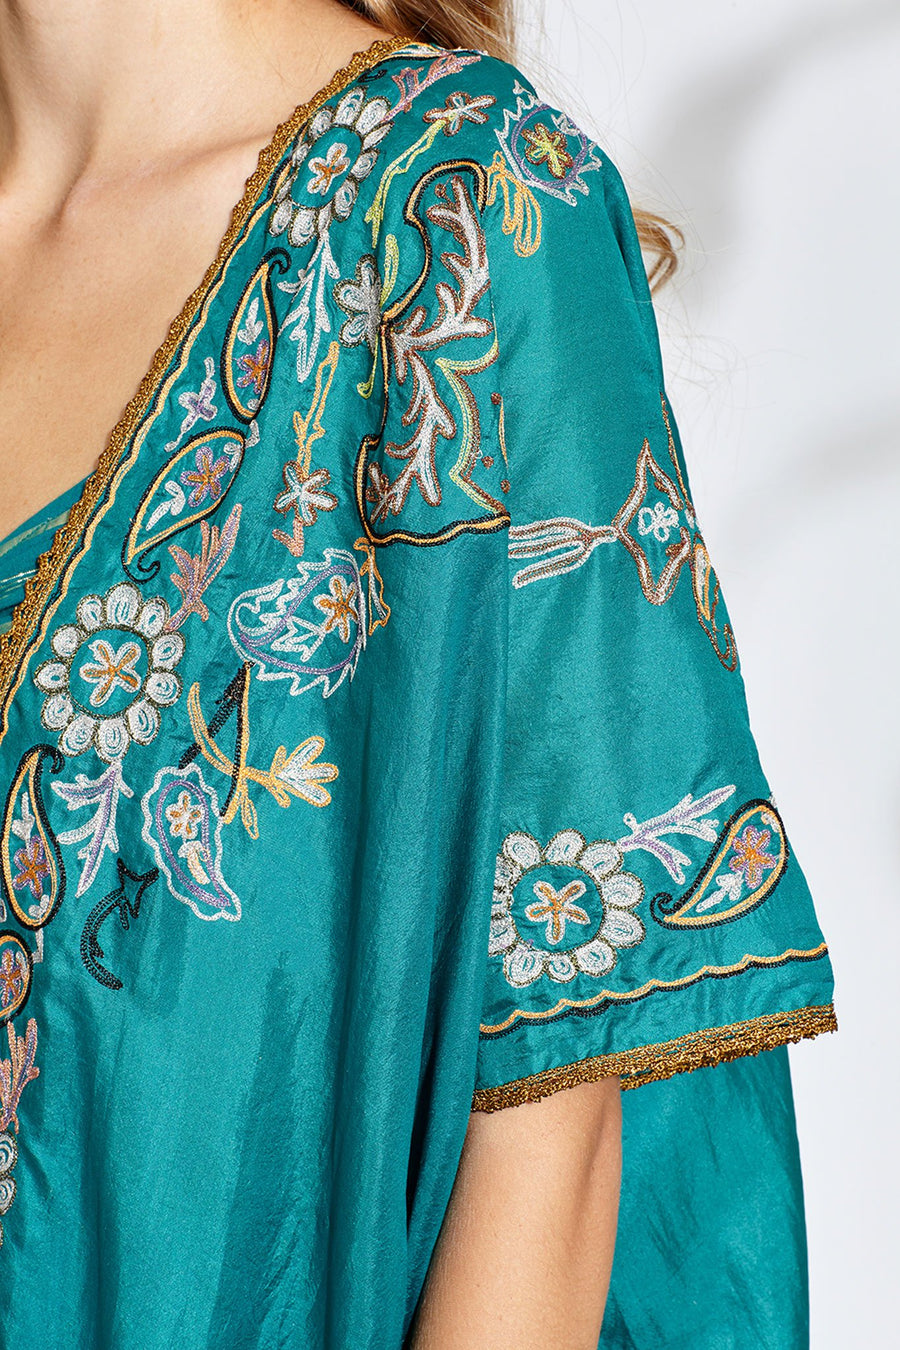 This is a detail photo of the sleeve of a lagoon-colored silky coat with colorful embroidery. The embroidery has paisley and floral designs and sleeve hem is finished with gold trim.